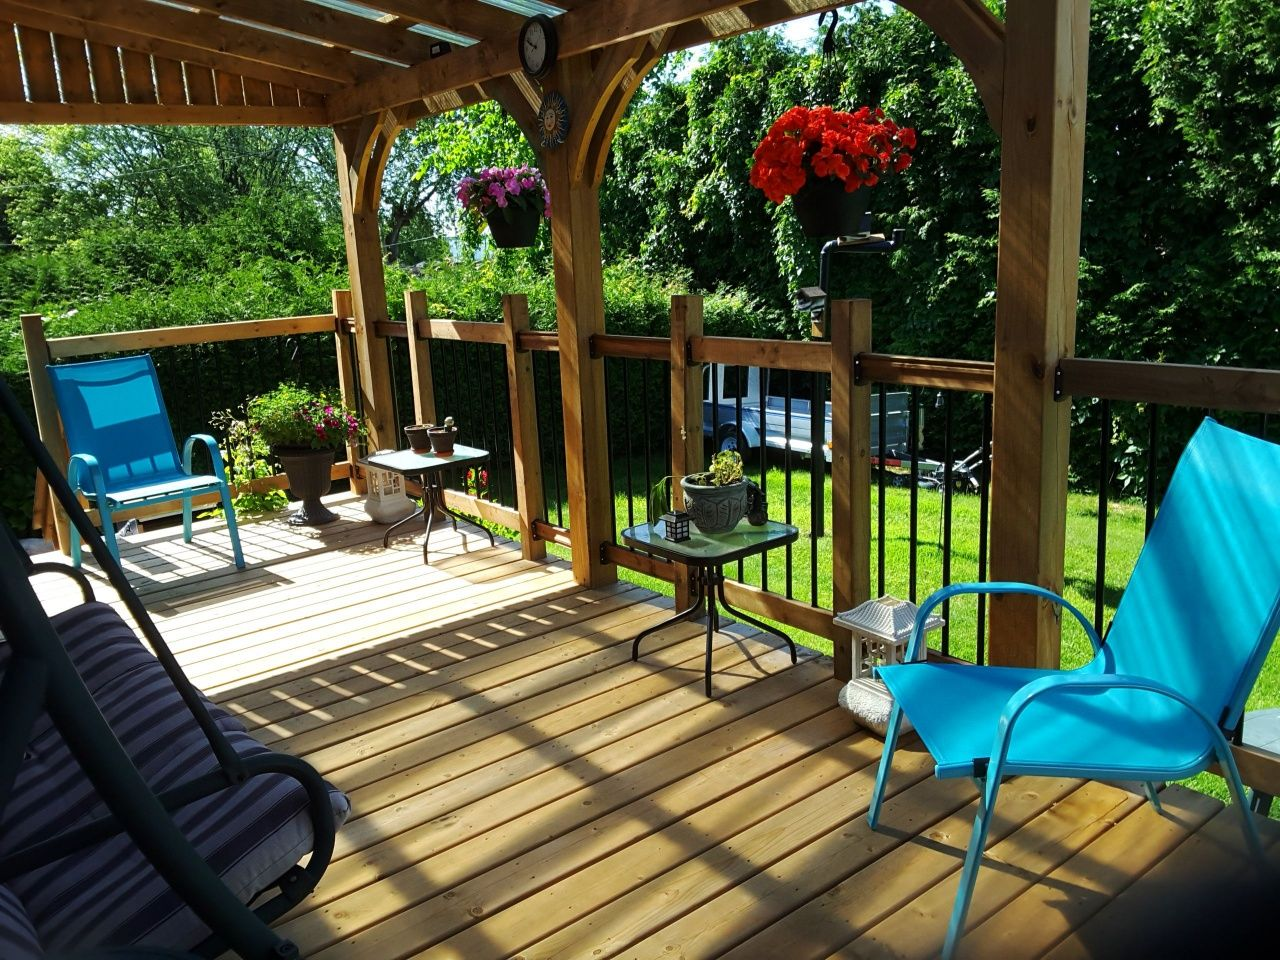 How To Build A Roof Over A Patio Construire Une Veranda In 2019 Outdoor Furniture From How To Build A Roof Over A Patio In 2020 Backyard Patio Deck Vs Patio Patio